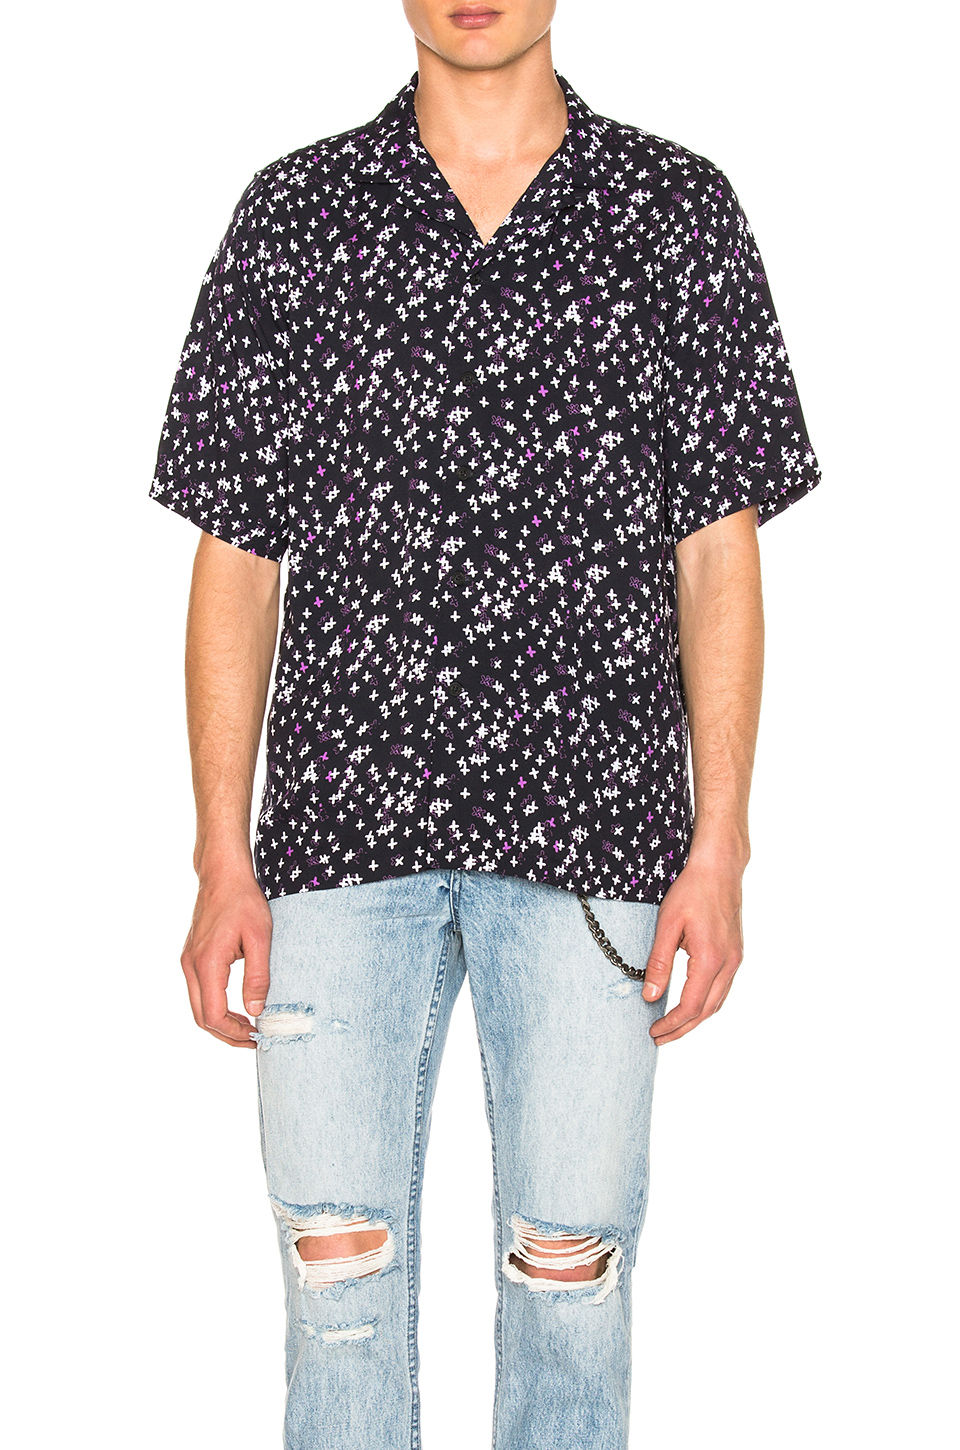 Ksubi Bright TBones Shirt in Assorted